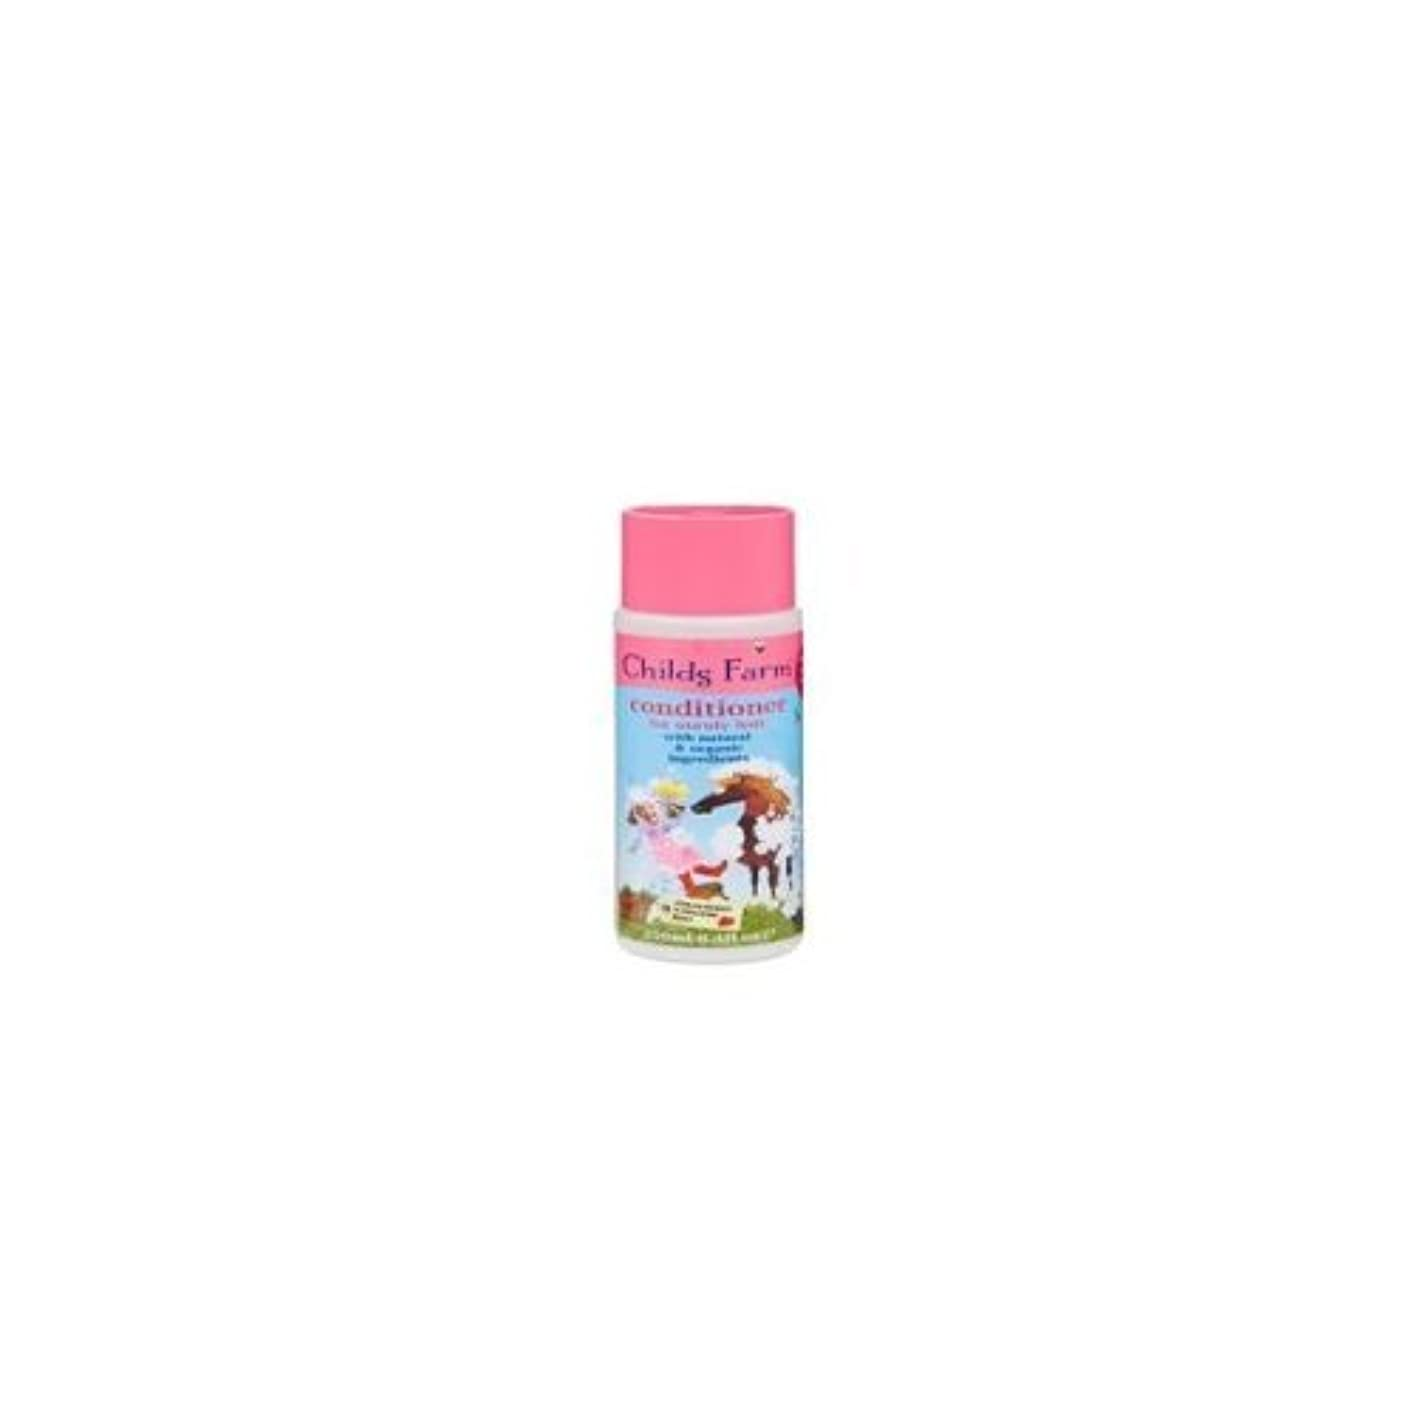 免除破壊的タービンConditioner for Unruly Hair (250ml) x 2 Pack Deal Saver by Childs Farm